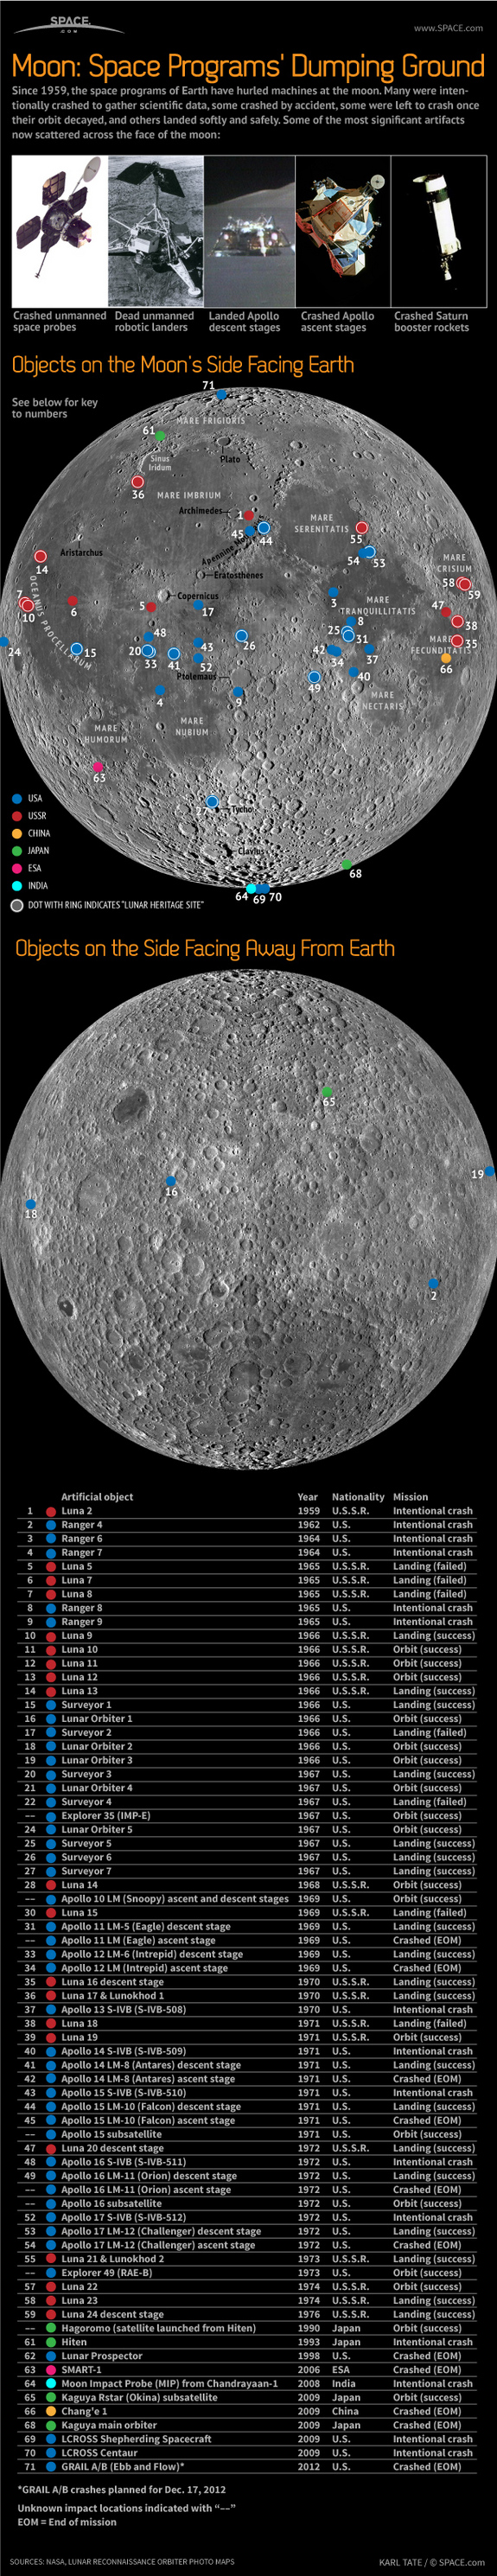 Learn about the dozens of dead space vehicles that litter the surface of the moon, in this SPACE.com infographic.